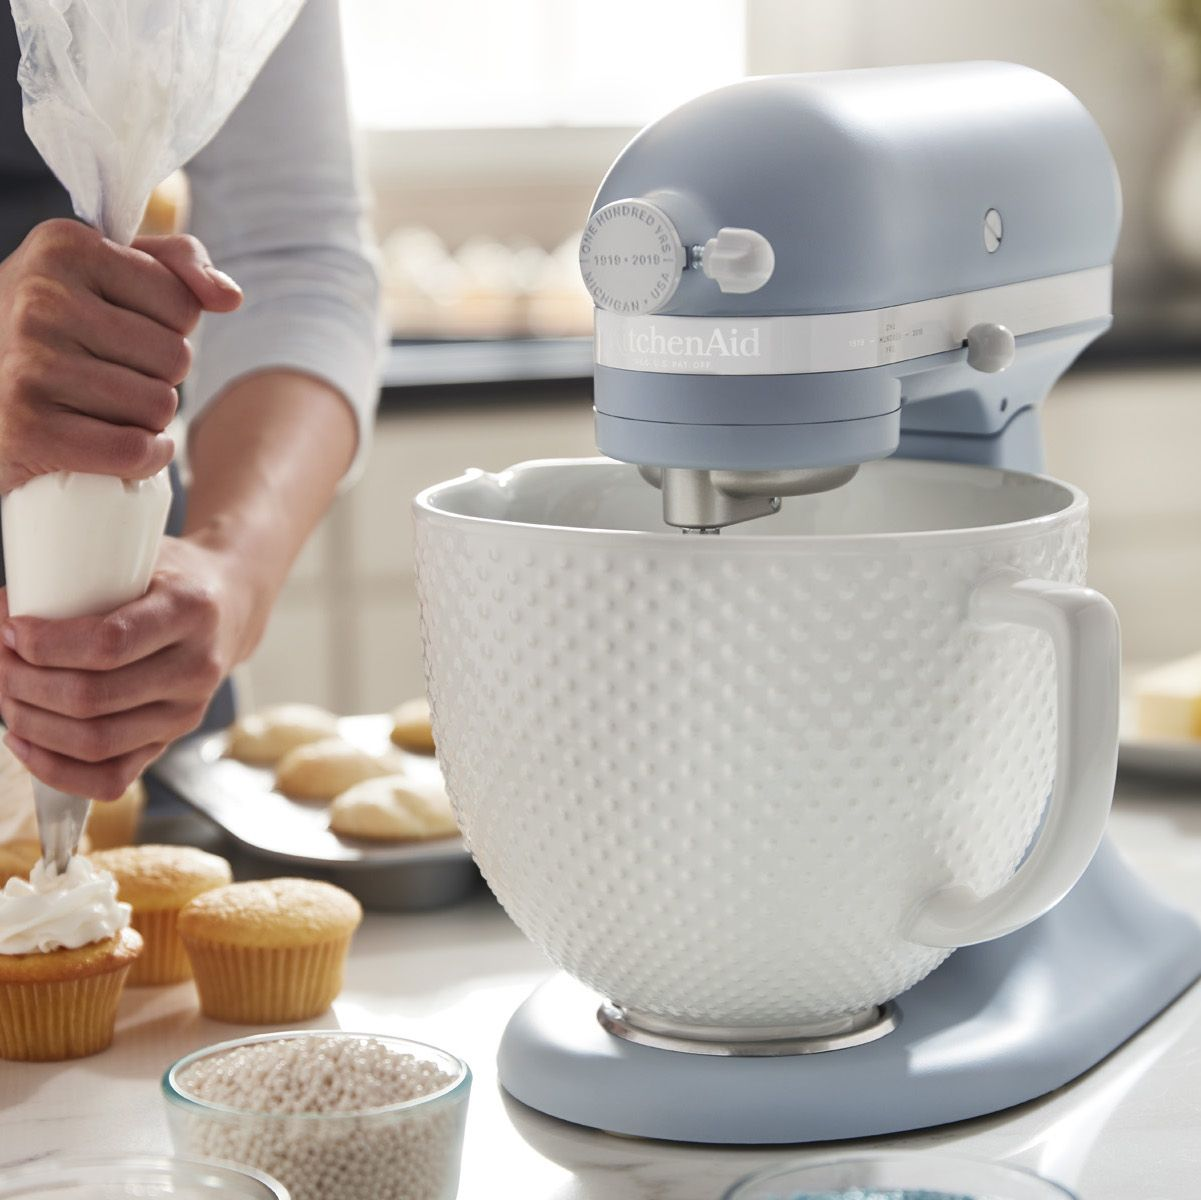 Kitchenaid Just Released A Retro Inspired Mixer Color To